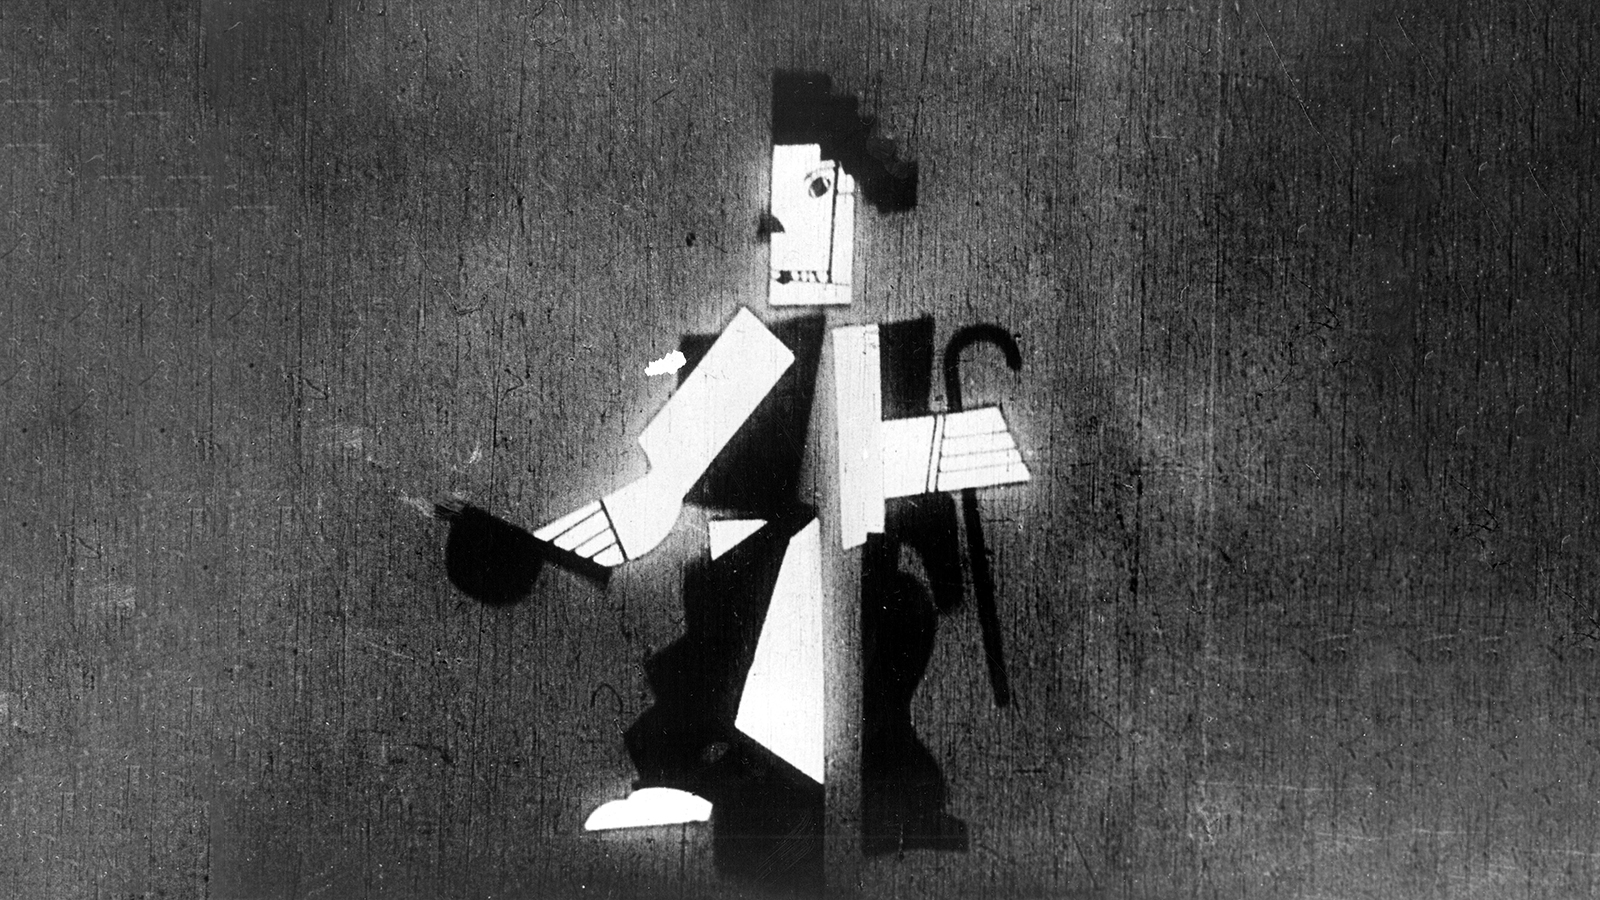 [Ballet mécanique / In a Lonely Place] Ballet mécanique, 1924 ©Image Entertainment/Photofest.